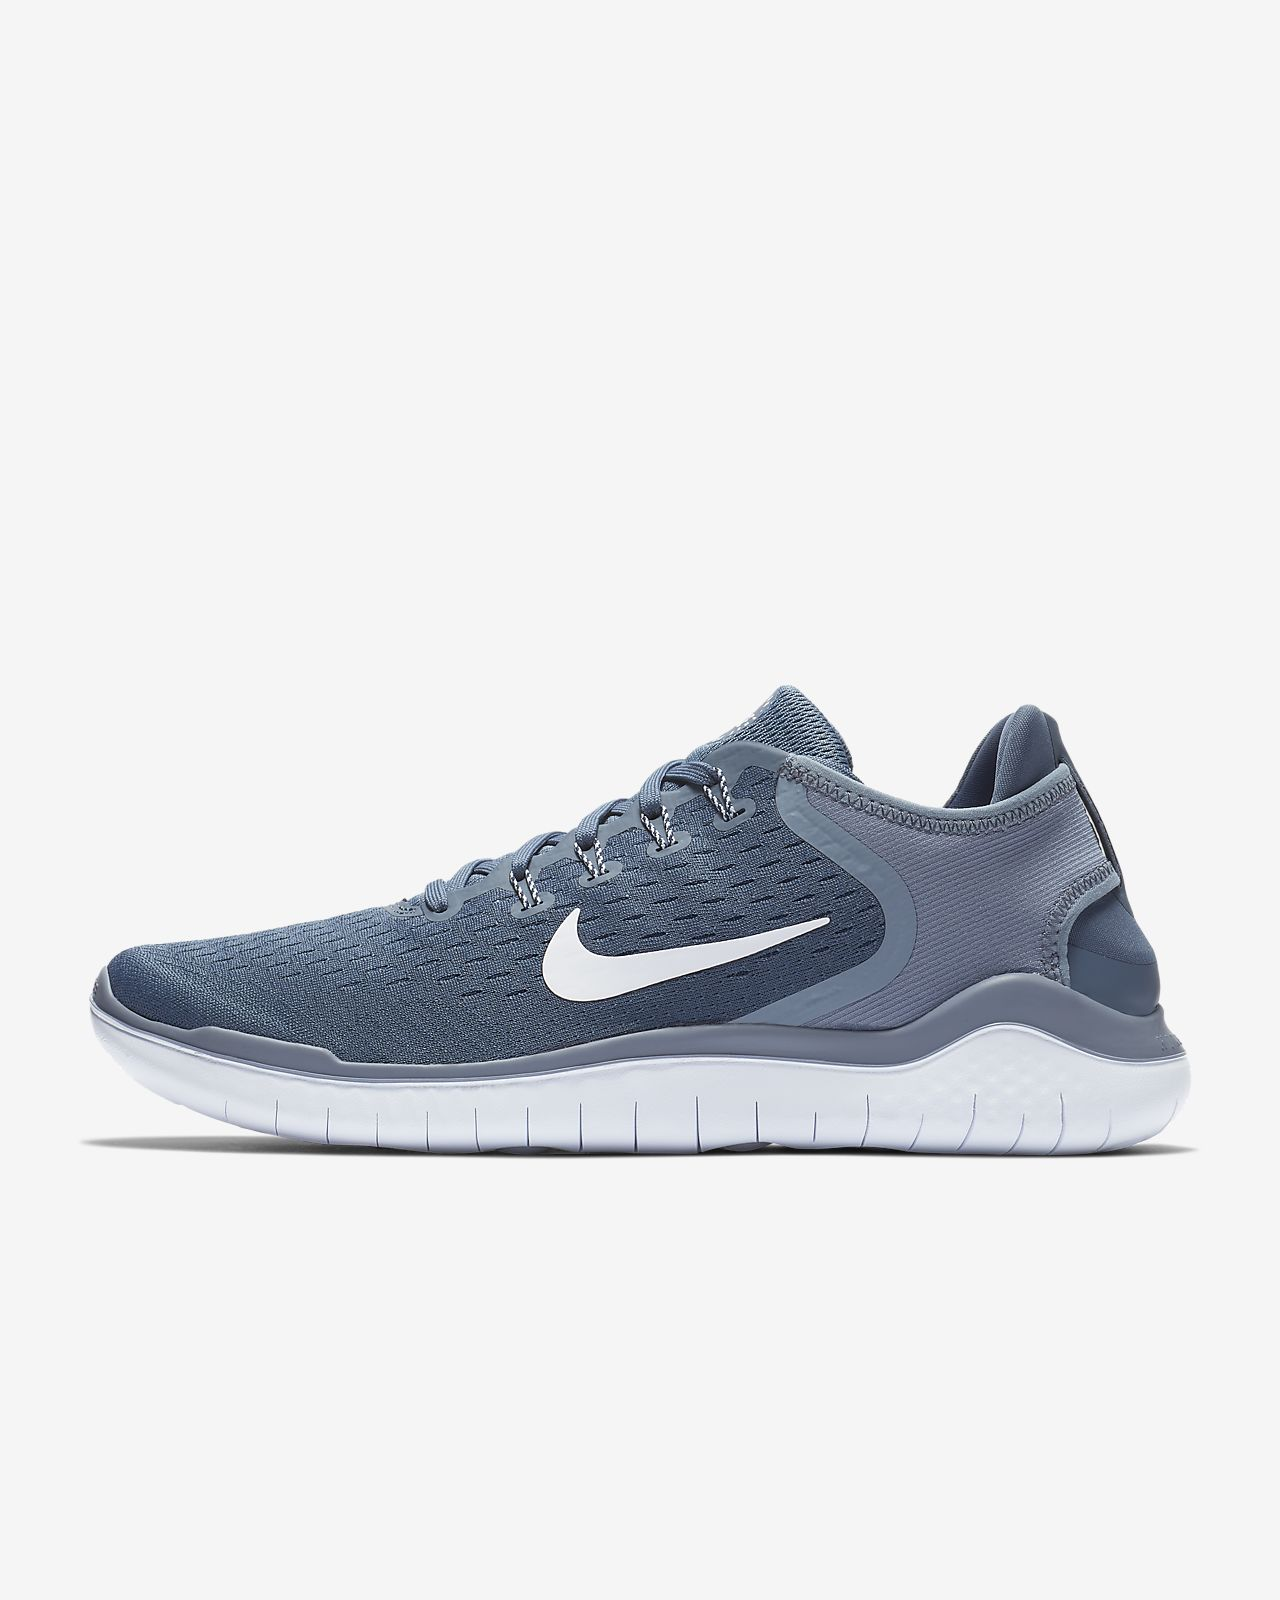 Nike Free RN 2018 Men's Running Shoe